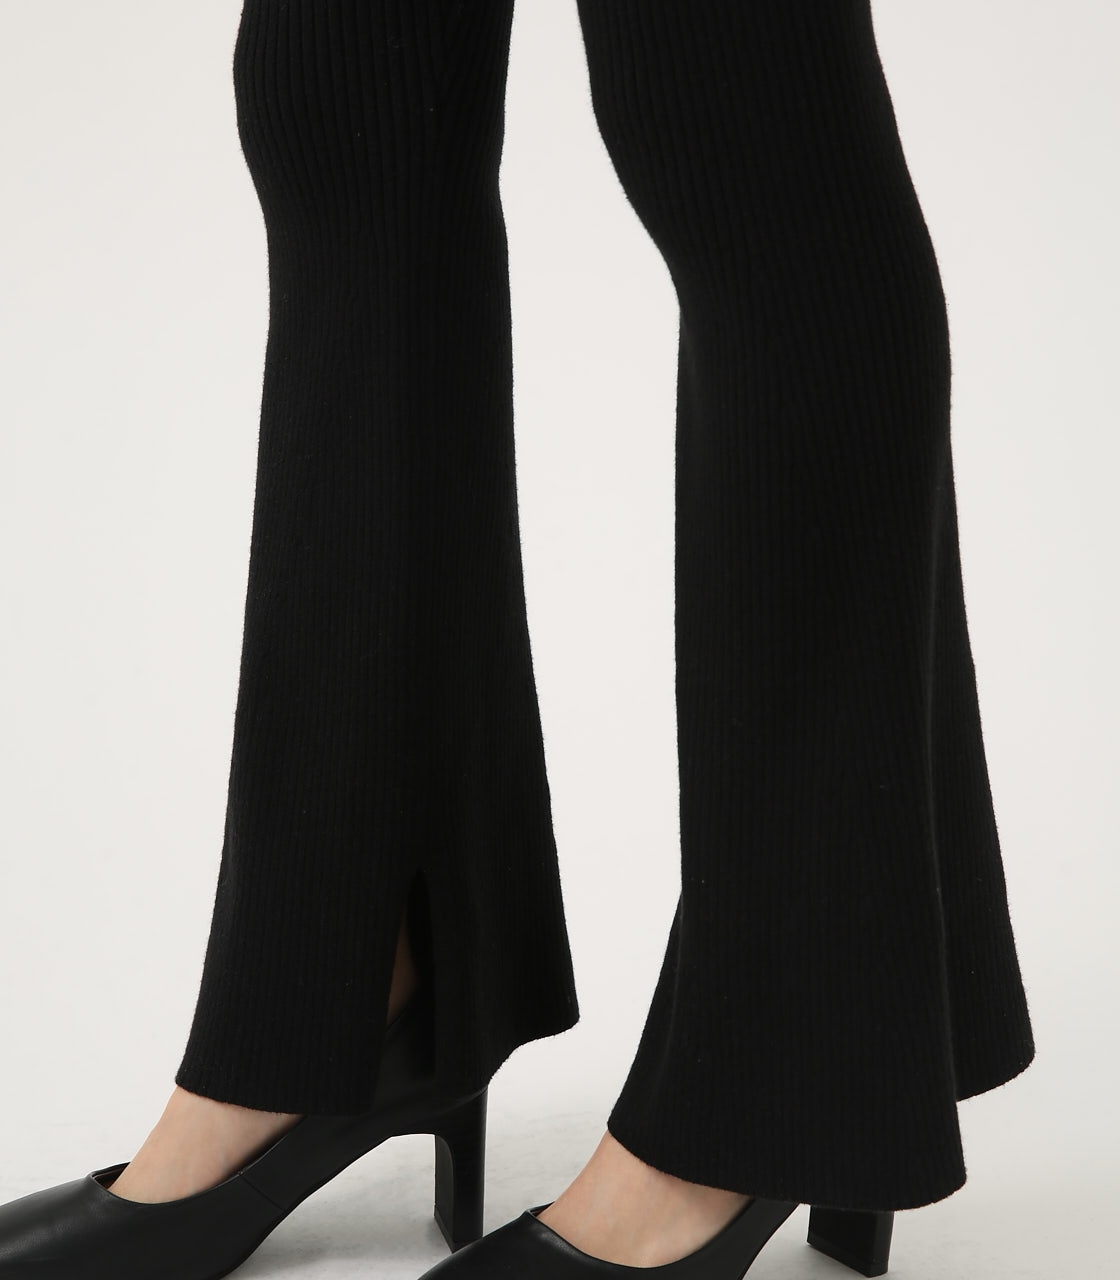 【AZUL BY MOUSSY】RIB KNIT FLARE PANTS 詳細画像 BLK 5